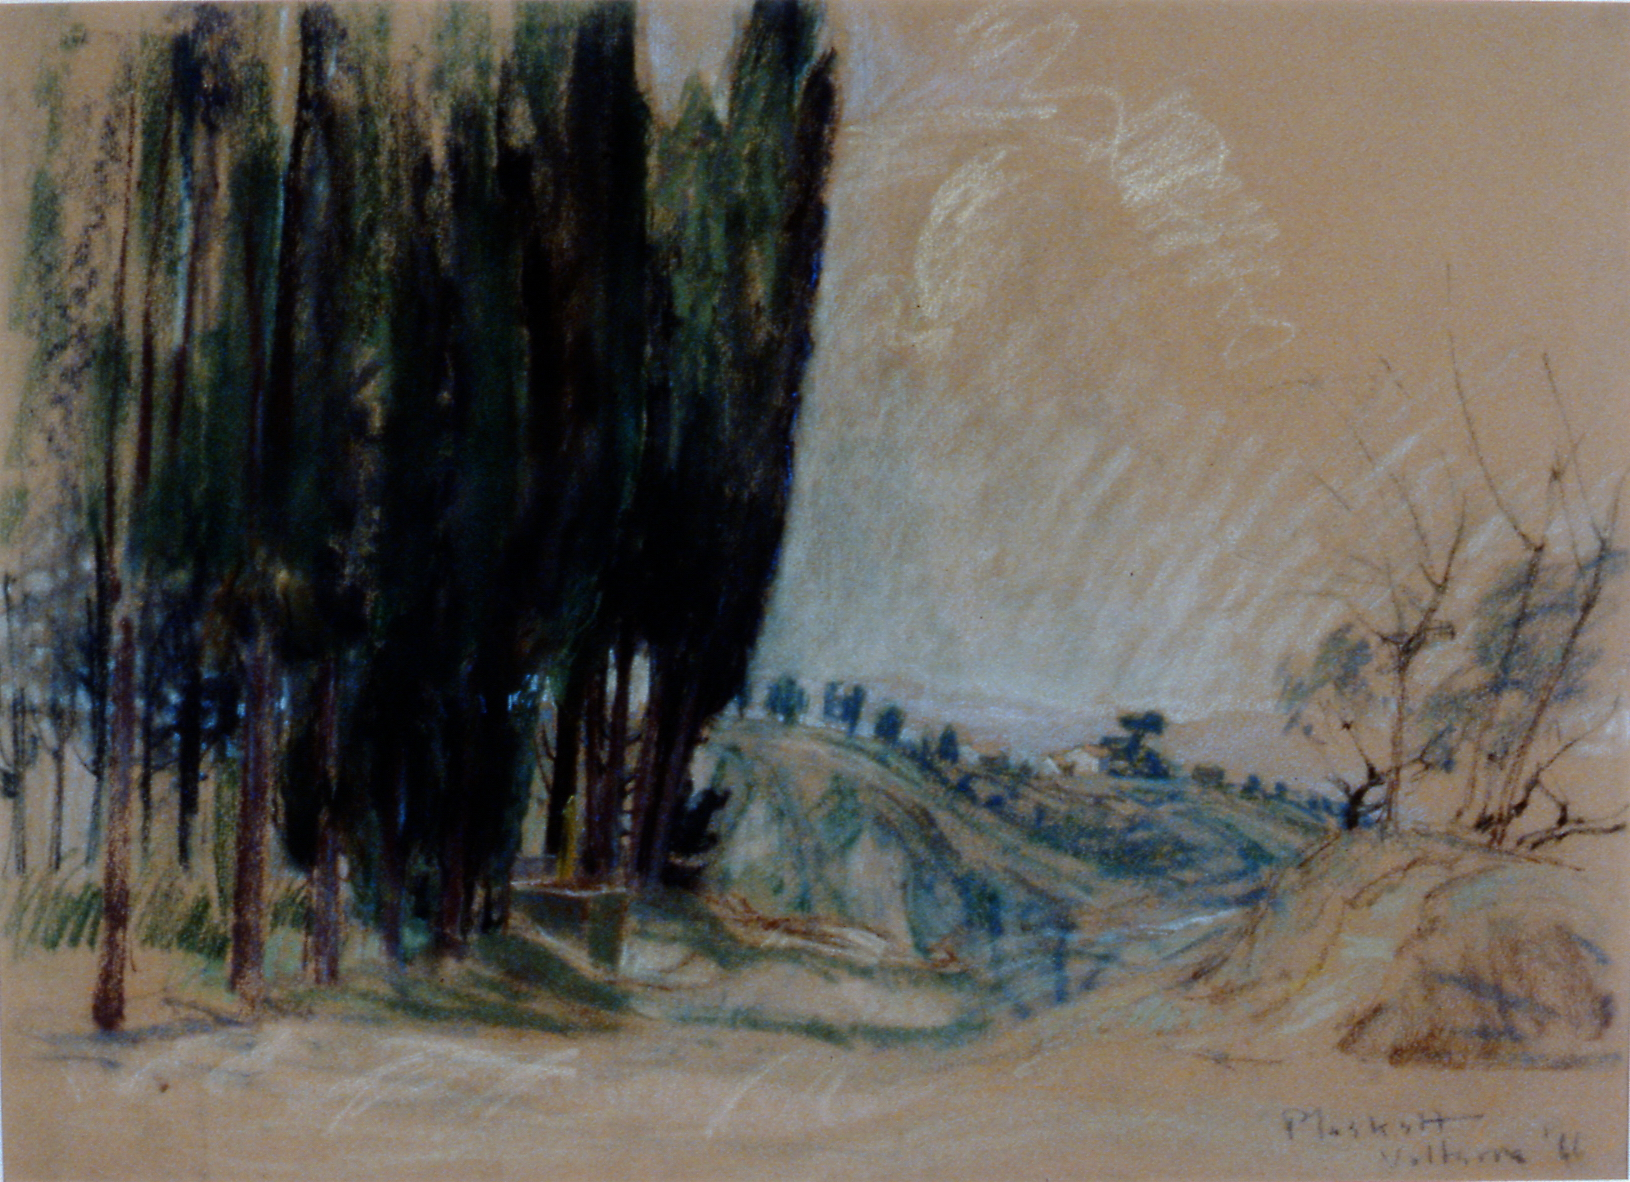 Road Past the Cyprus , 1966, Joseph Plaskett, pastel on beige paper, 50 cm x 65 cm, 1998.03.02, gift of Arthur E. Lock